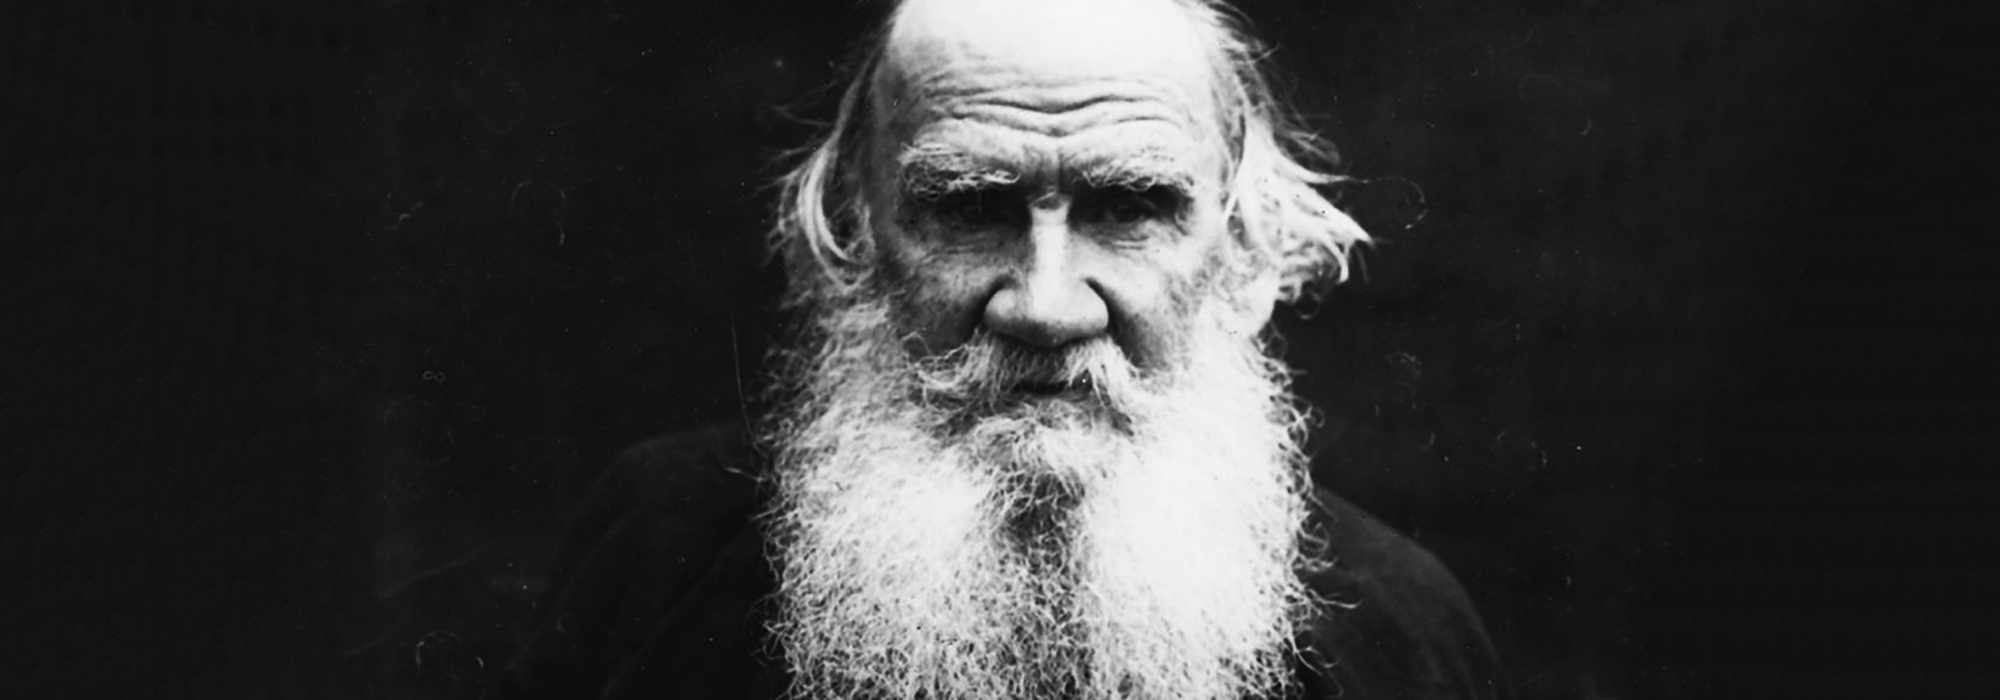 Those who inspired - Leo Tolstoy